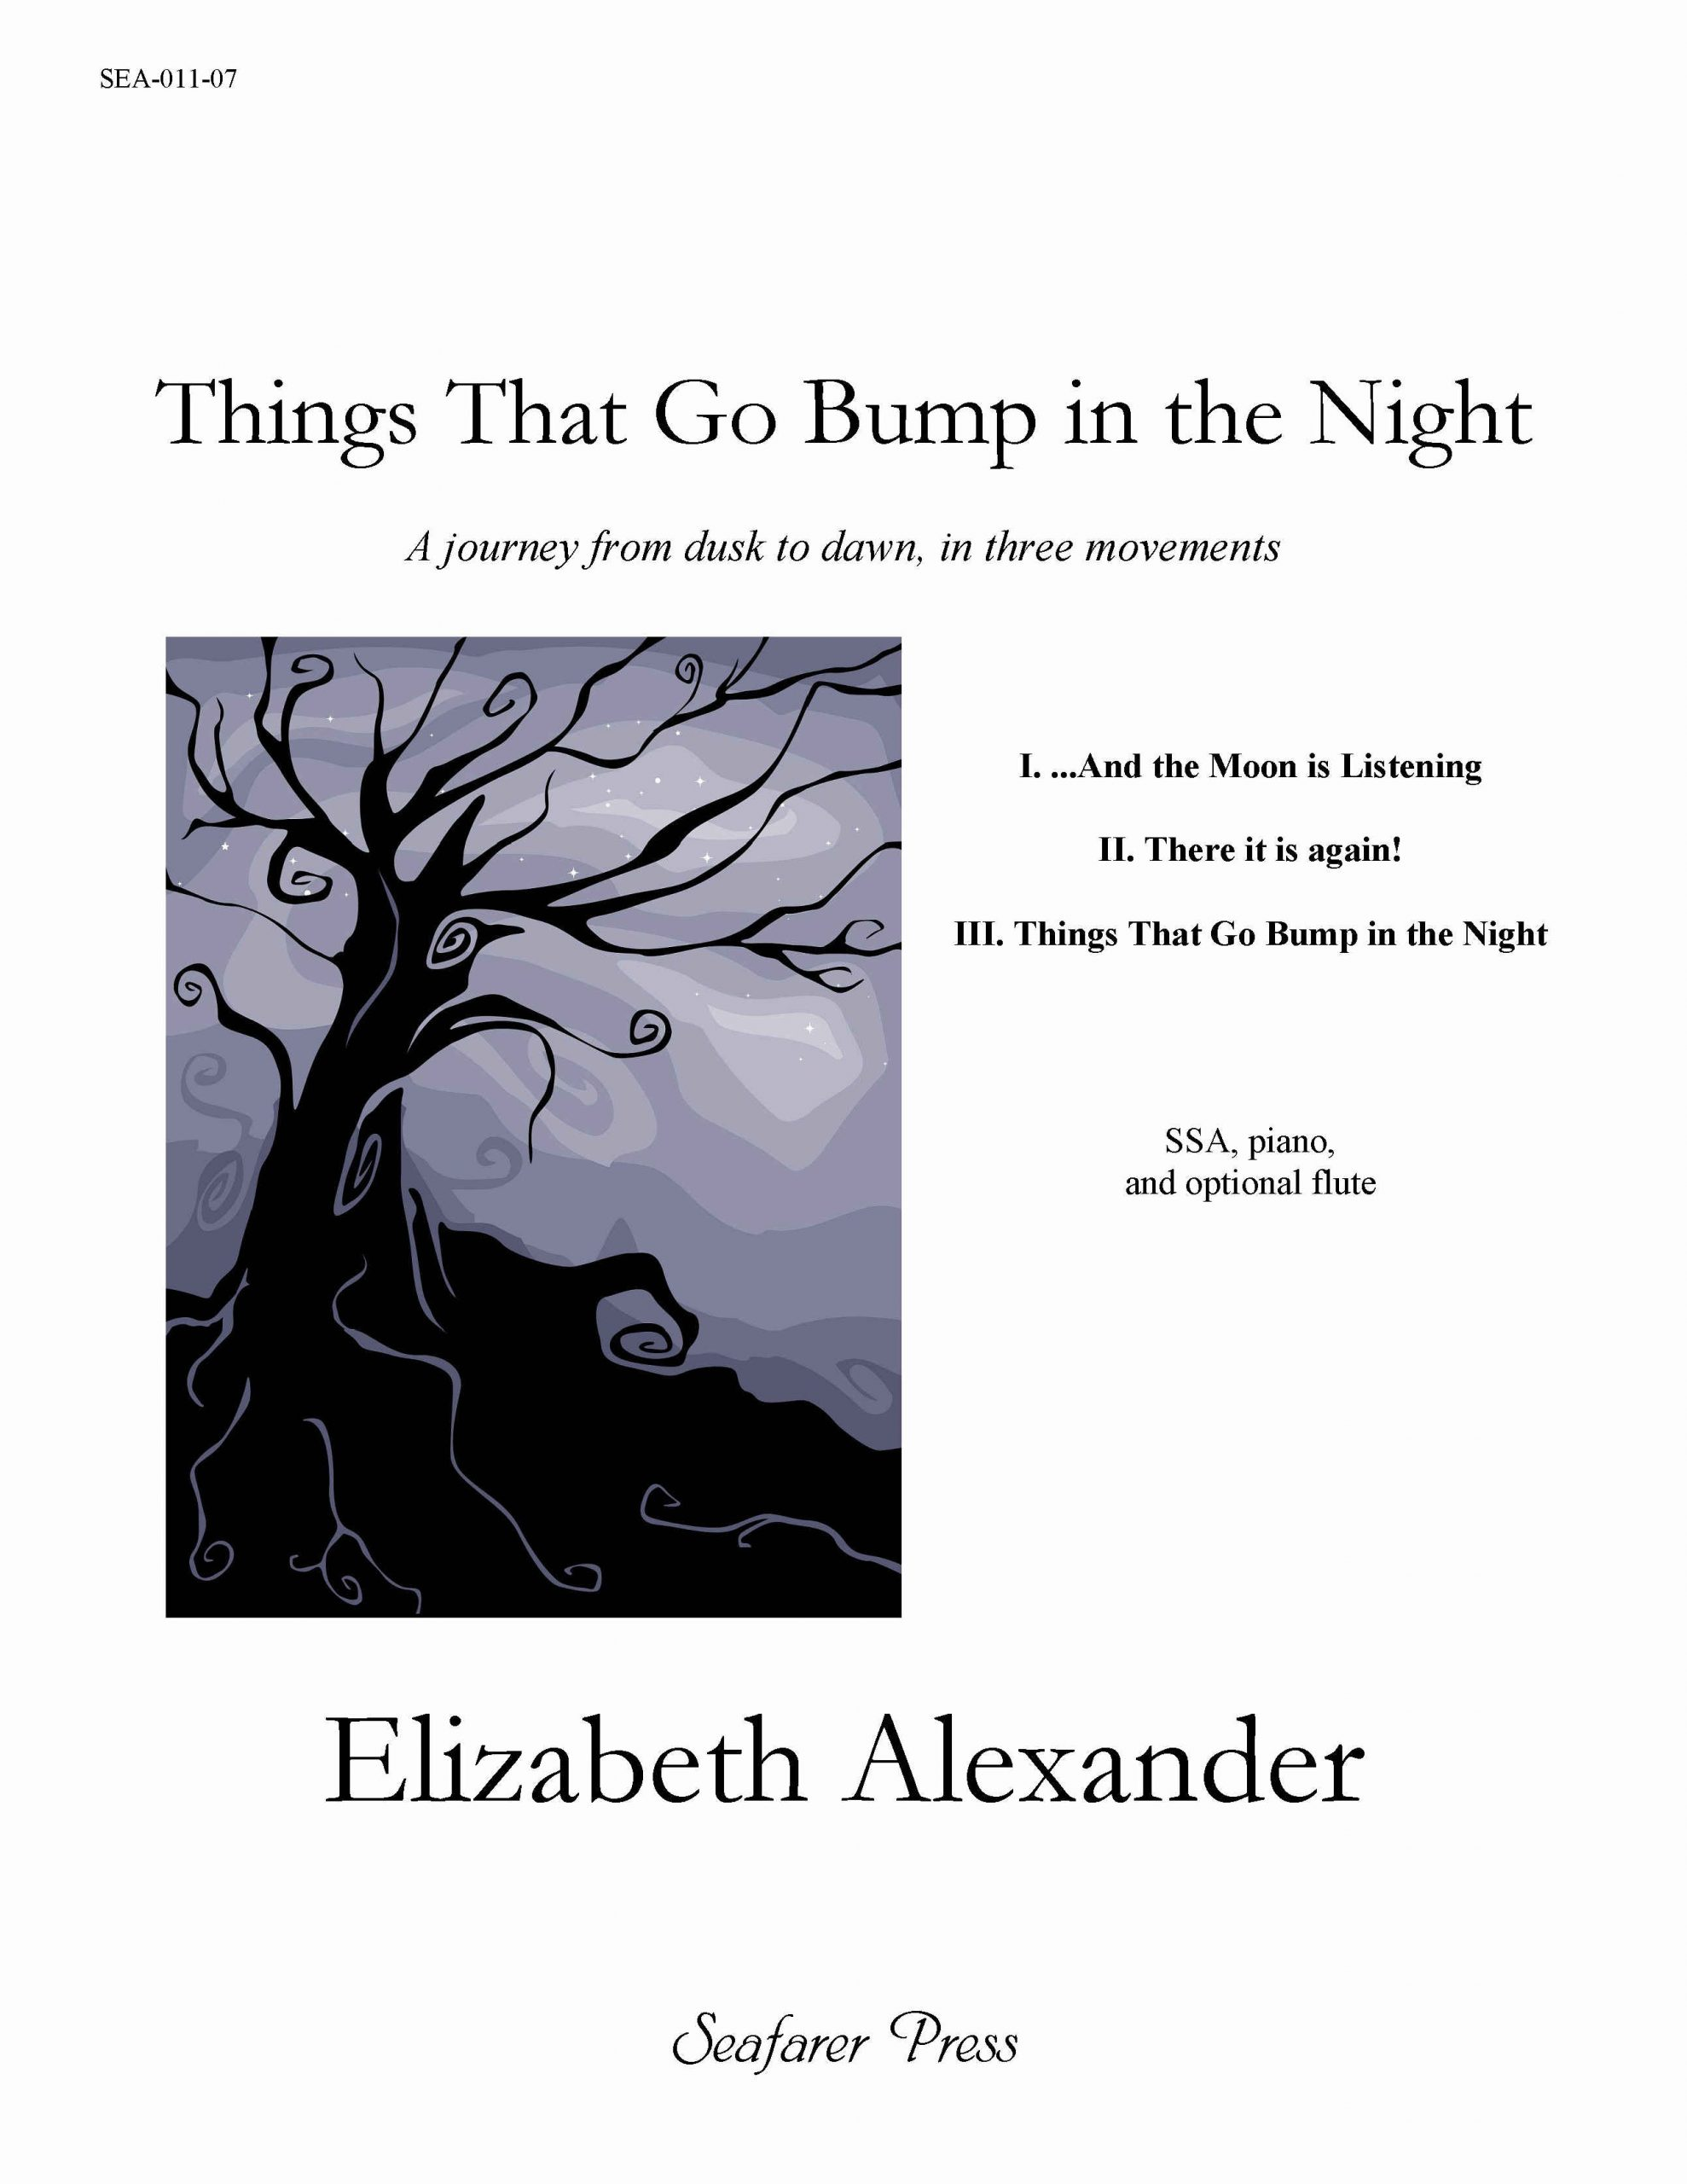 SEA-011-07 - Things That Go Bump in the Night